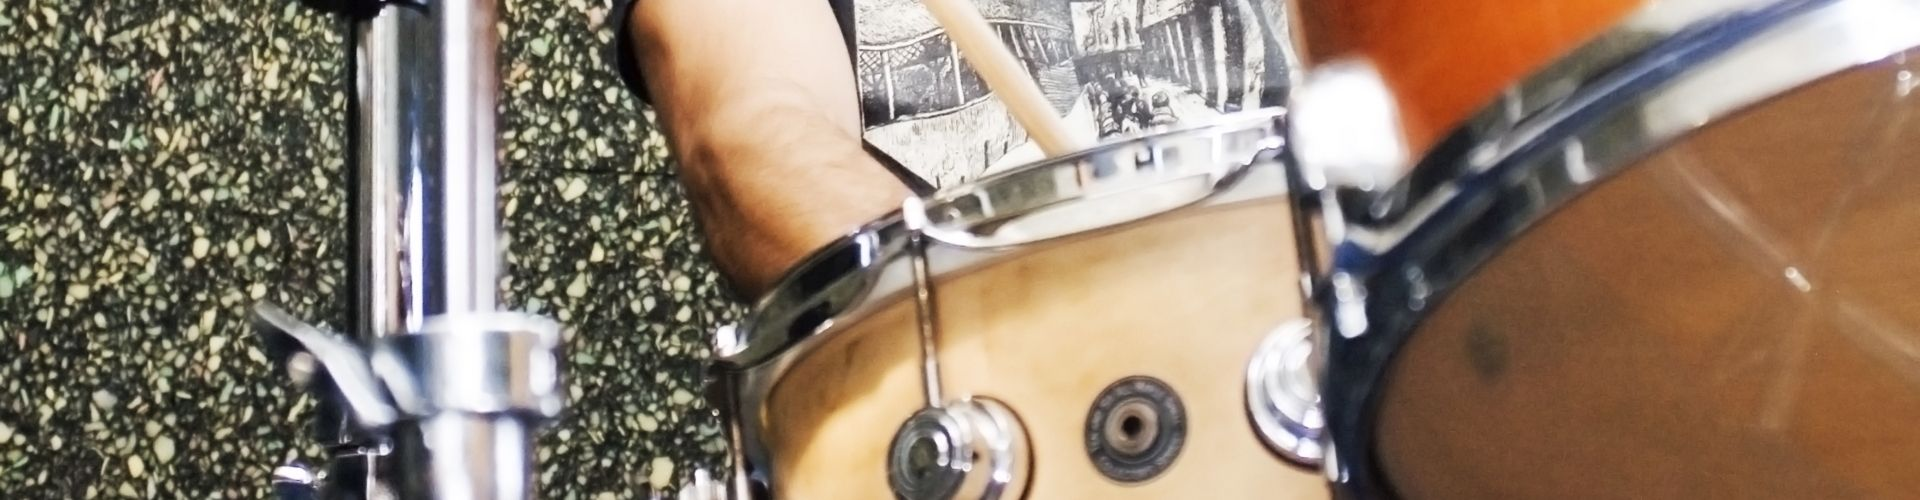 Purely Drums Image